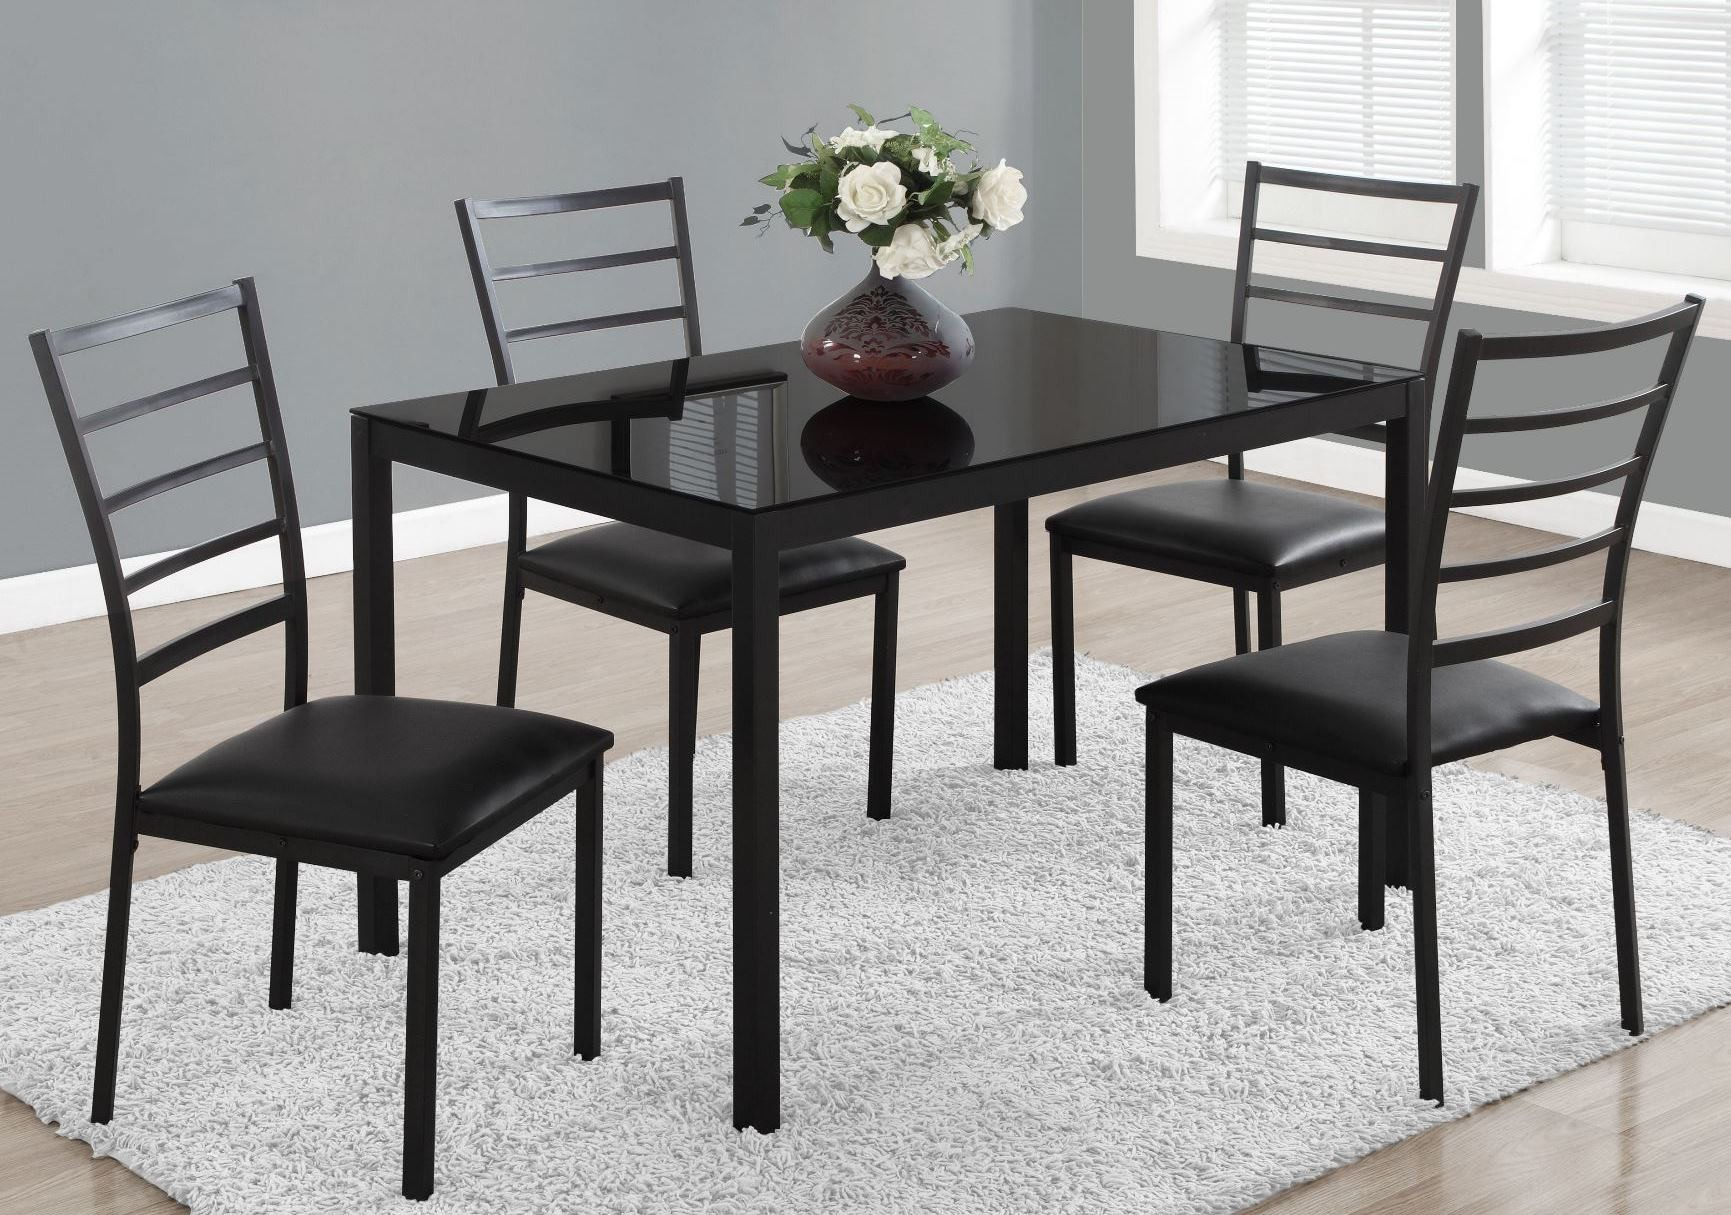 Black metal 5 piece rectangular dining room set 1025 monarch for 2 piece dining room set